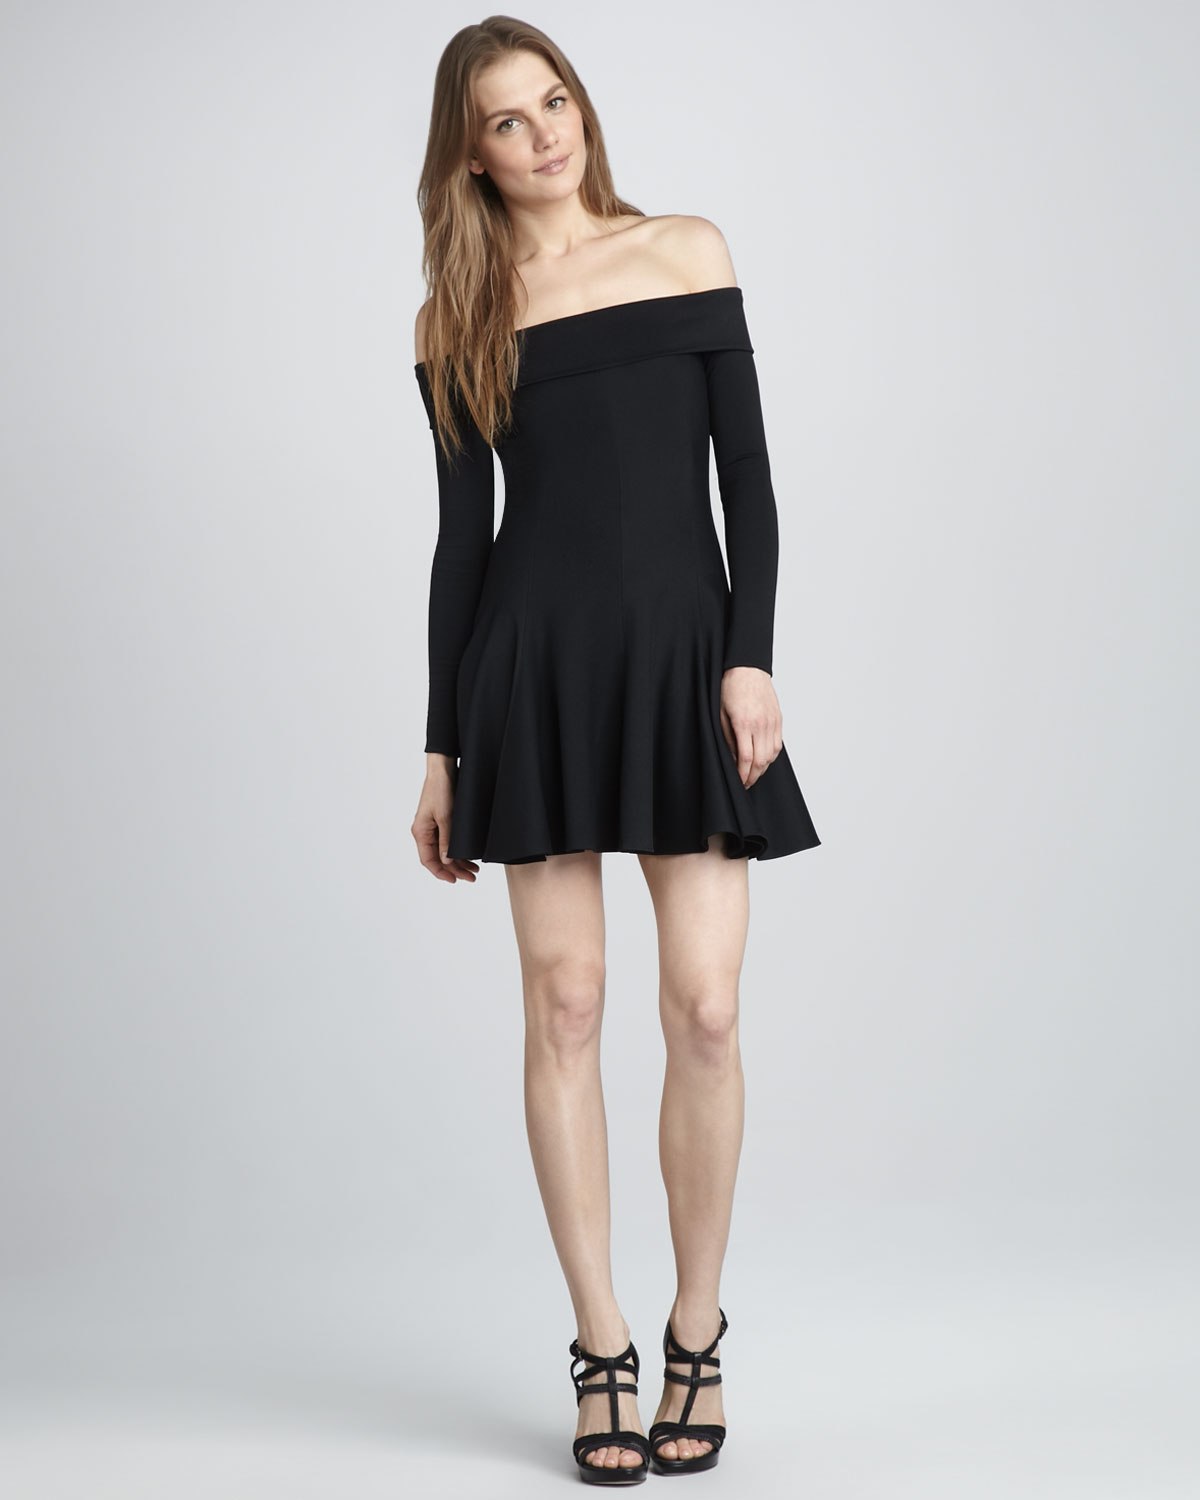 Off Shoulder Dress Online Shop - Always In Fashion For All Occasions